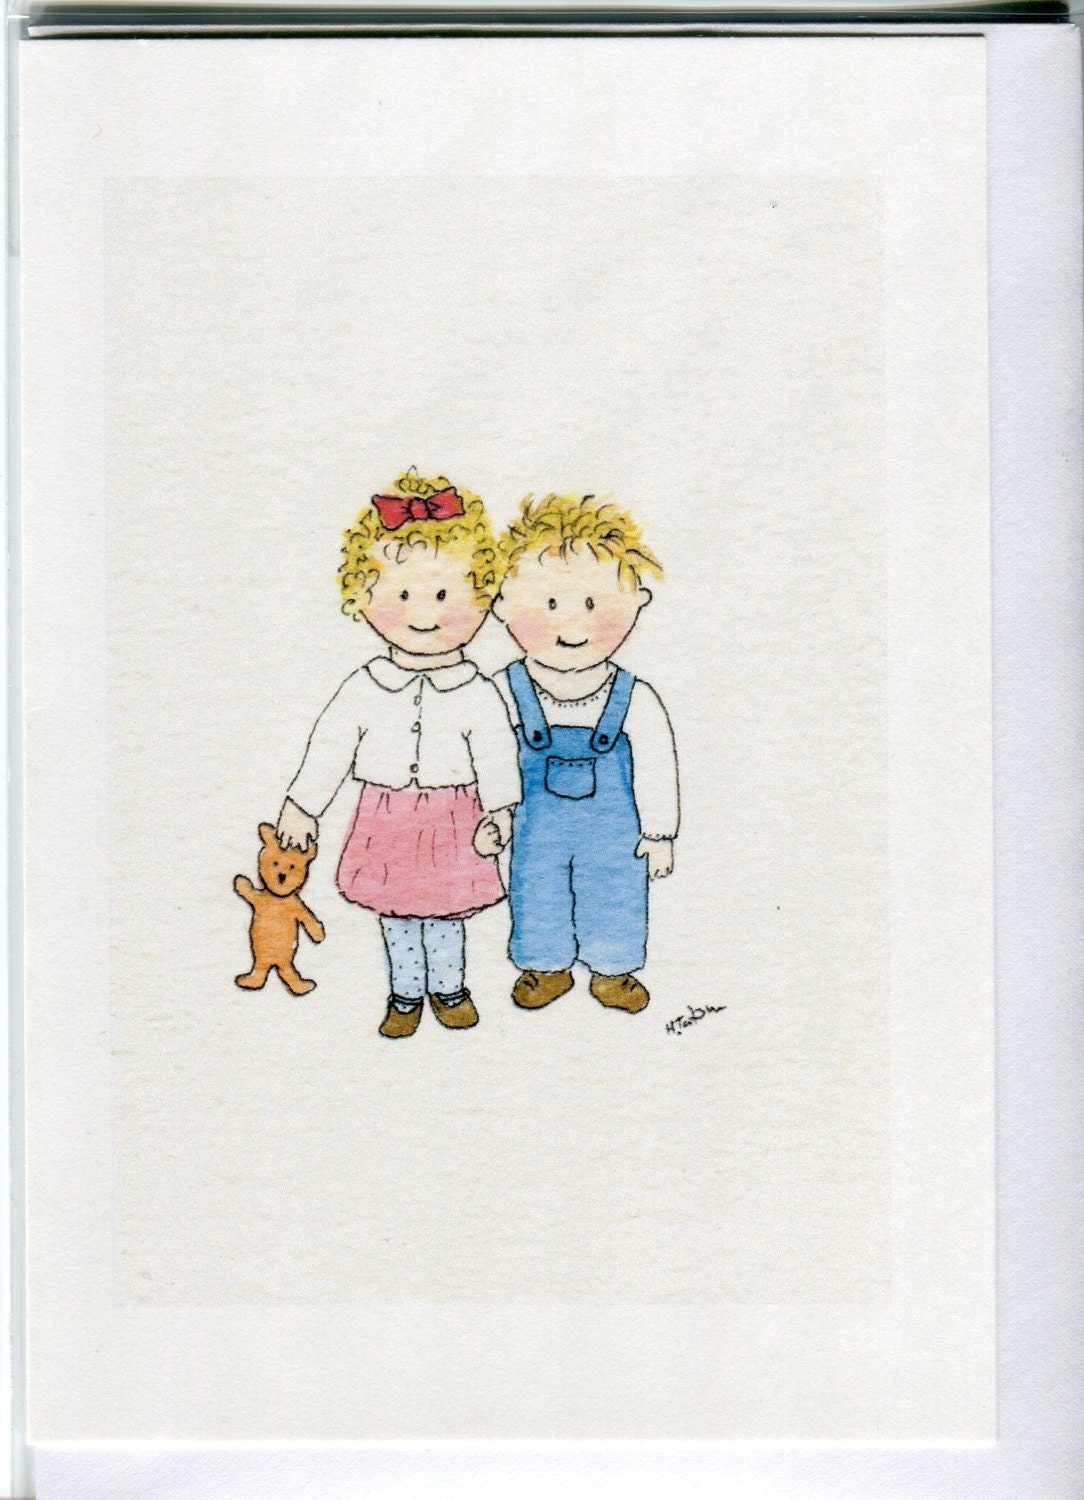 No 113 childrens card brother and sister card sibling card zoom kristyandbryce Gallery